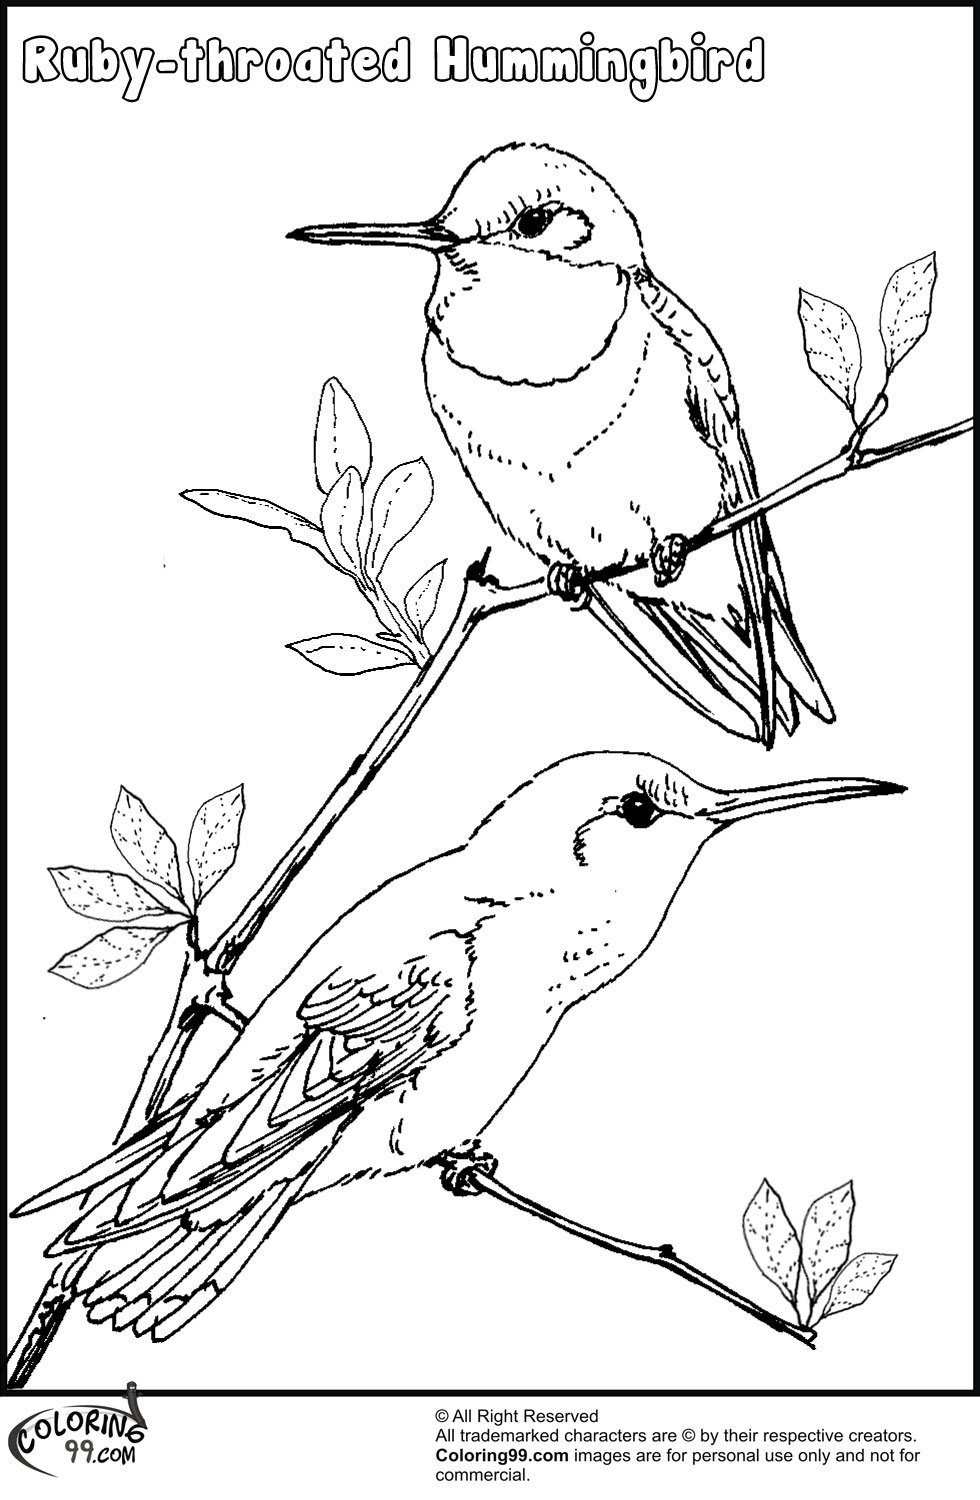 hummingbird colouring pages free printable hummingbird coloring pages for kids colouring pages hummingbird